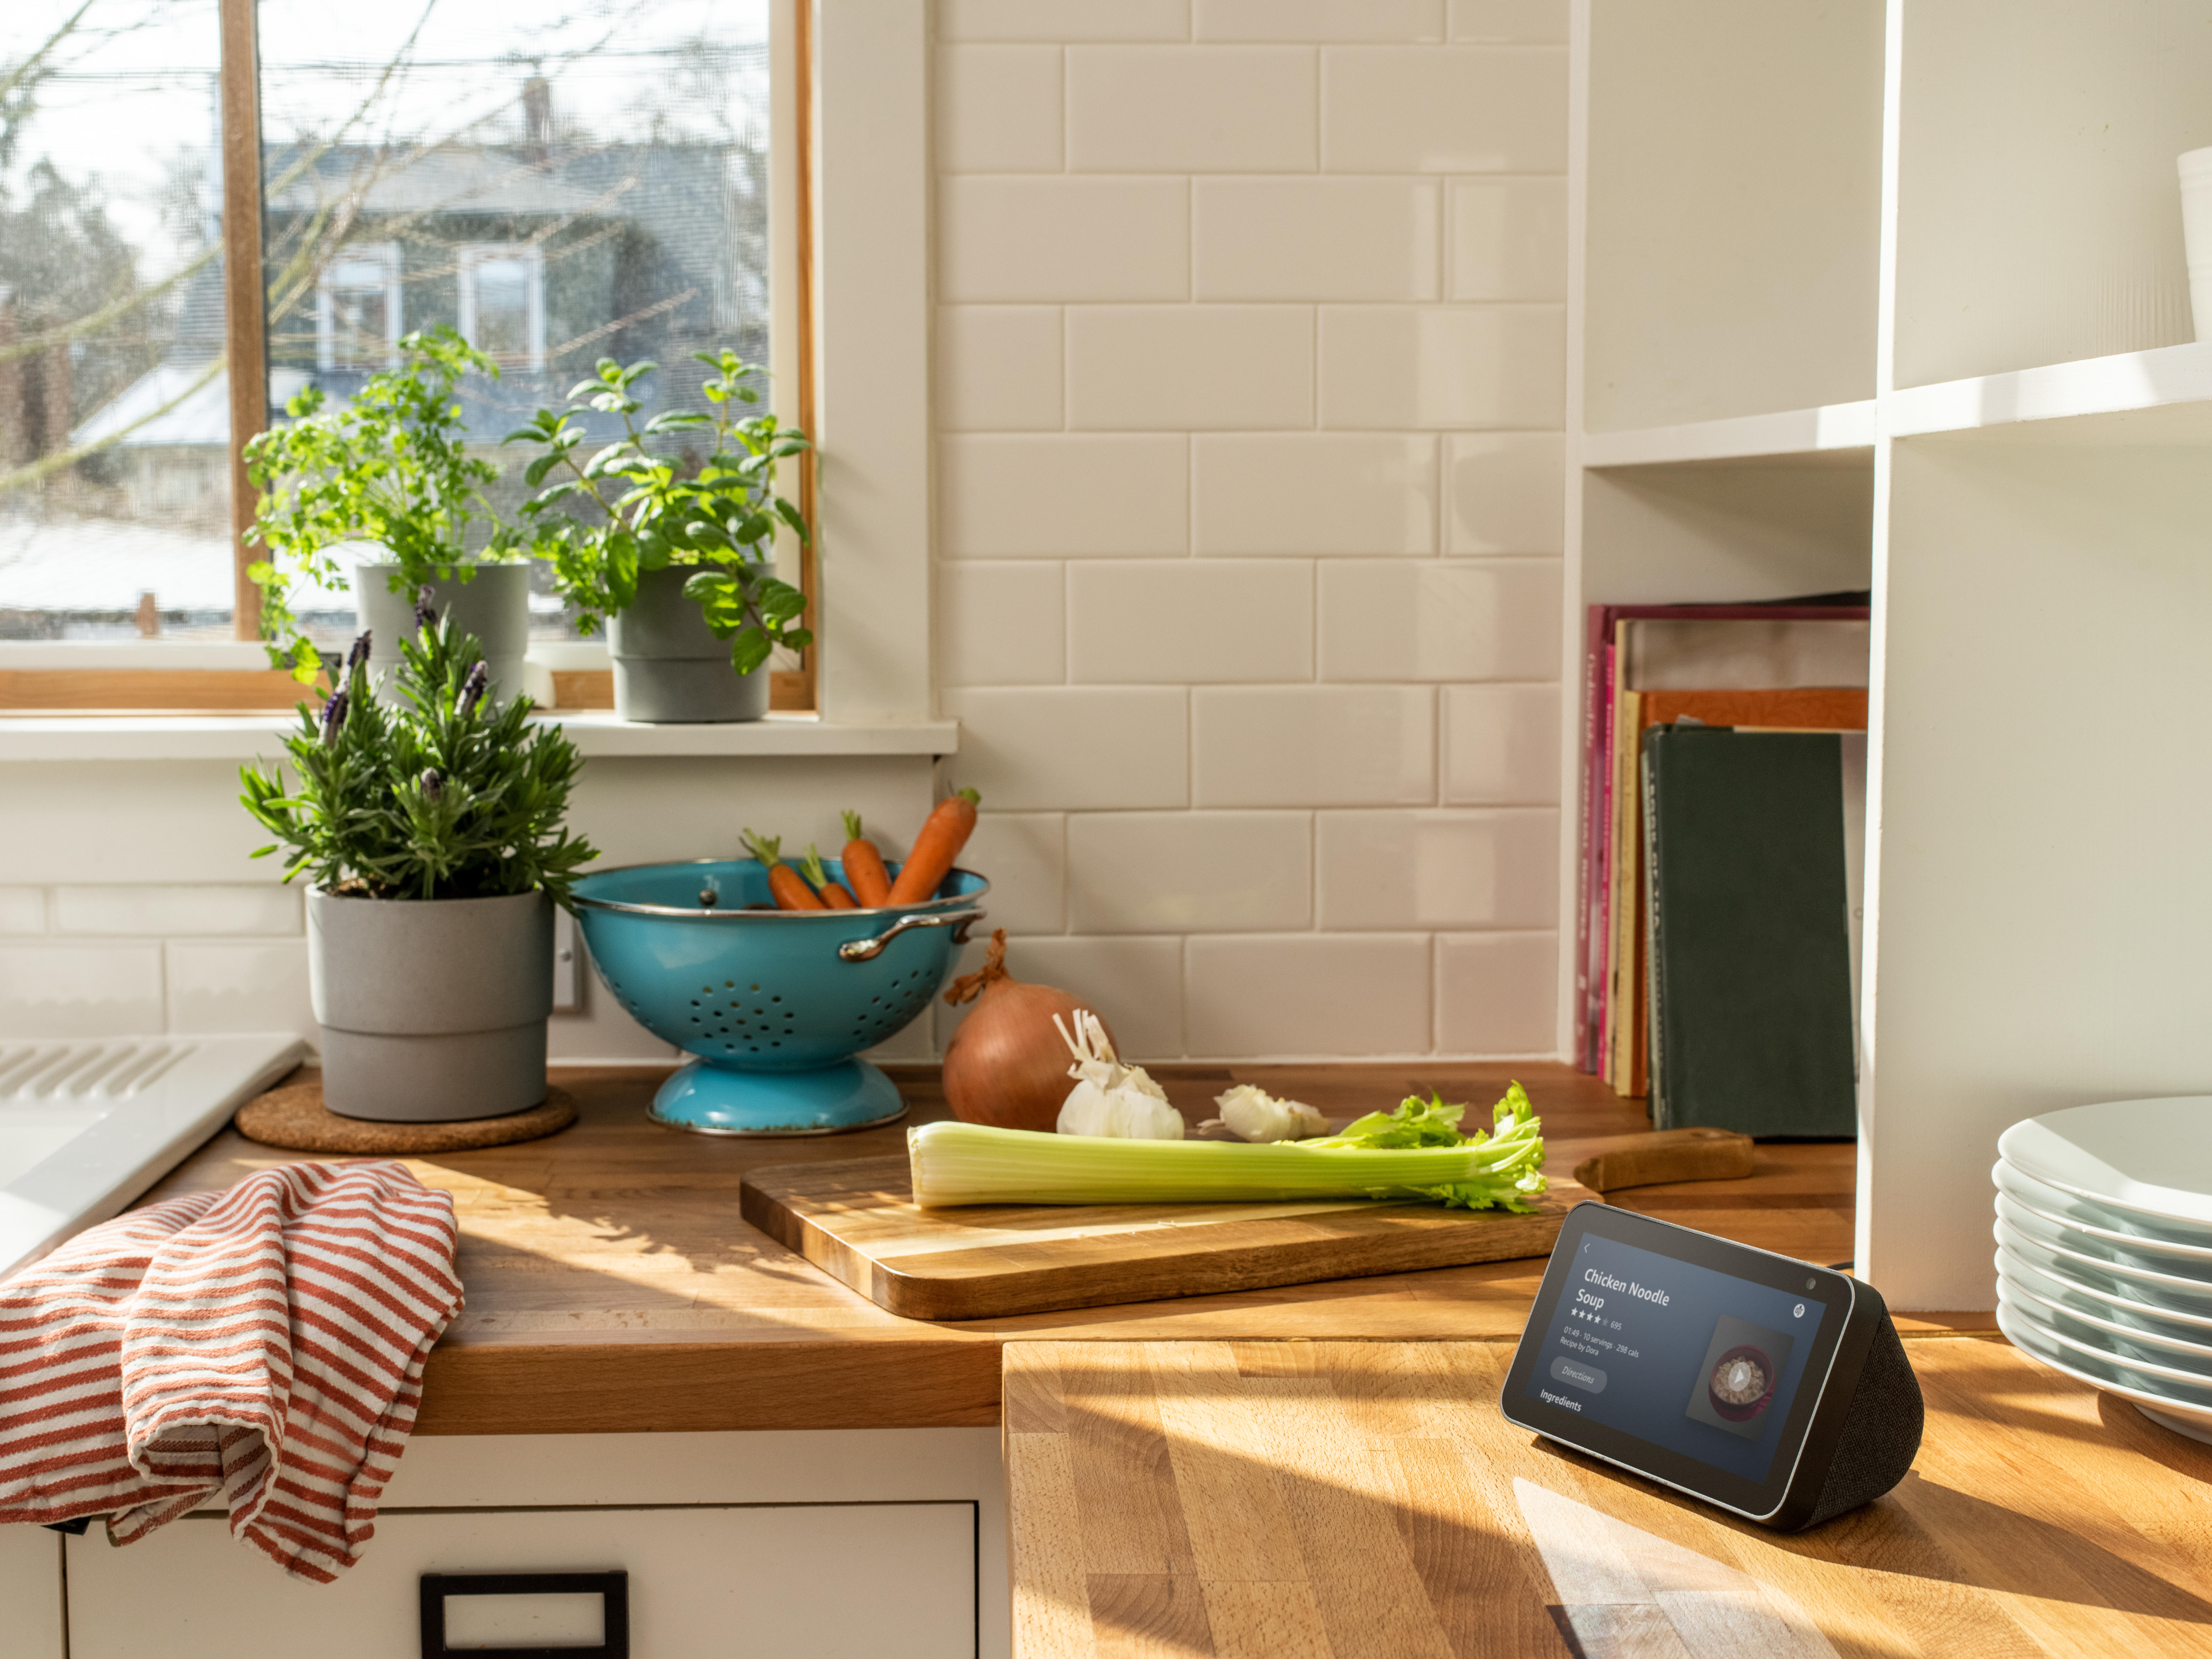 Alexa S Most Underrated Feature Why You Should Drop In On Amazon Echo More Often Cnet